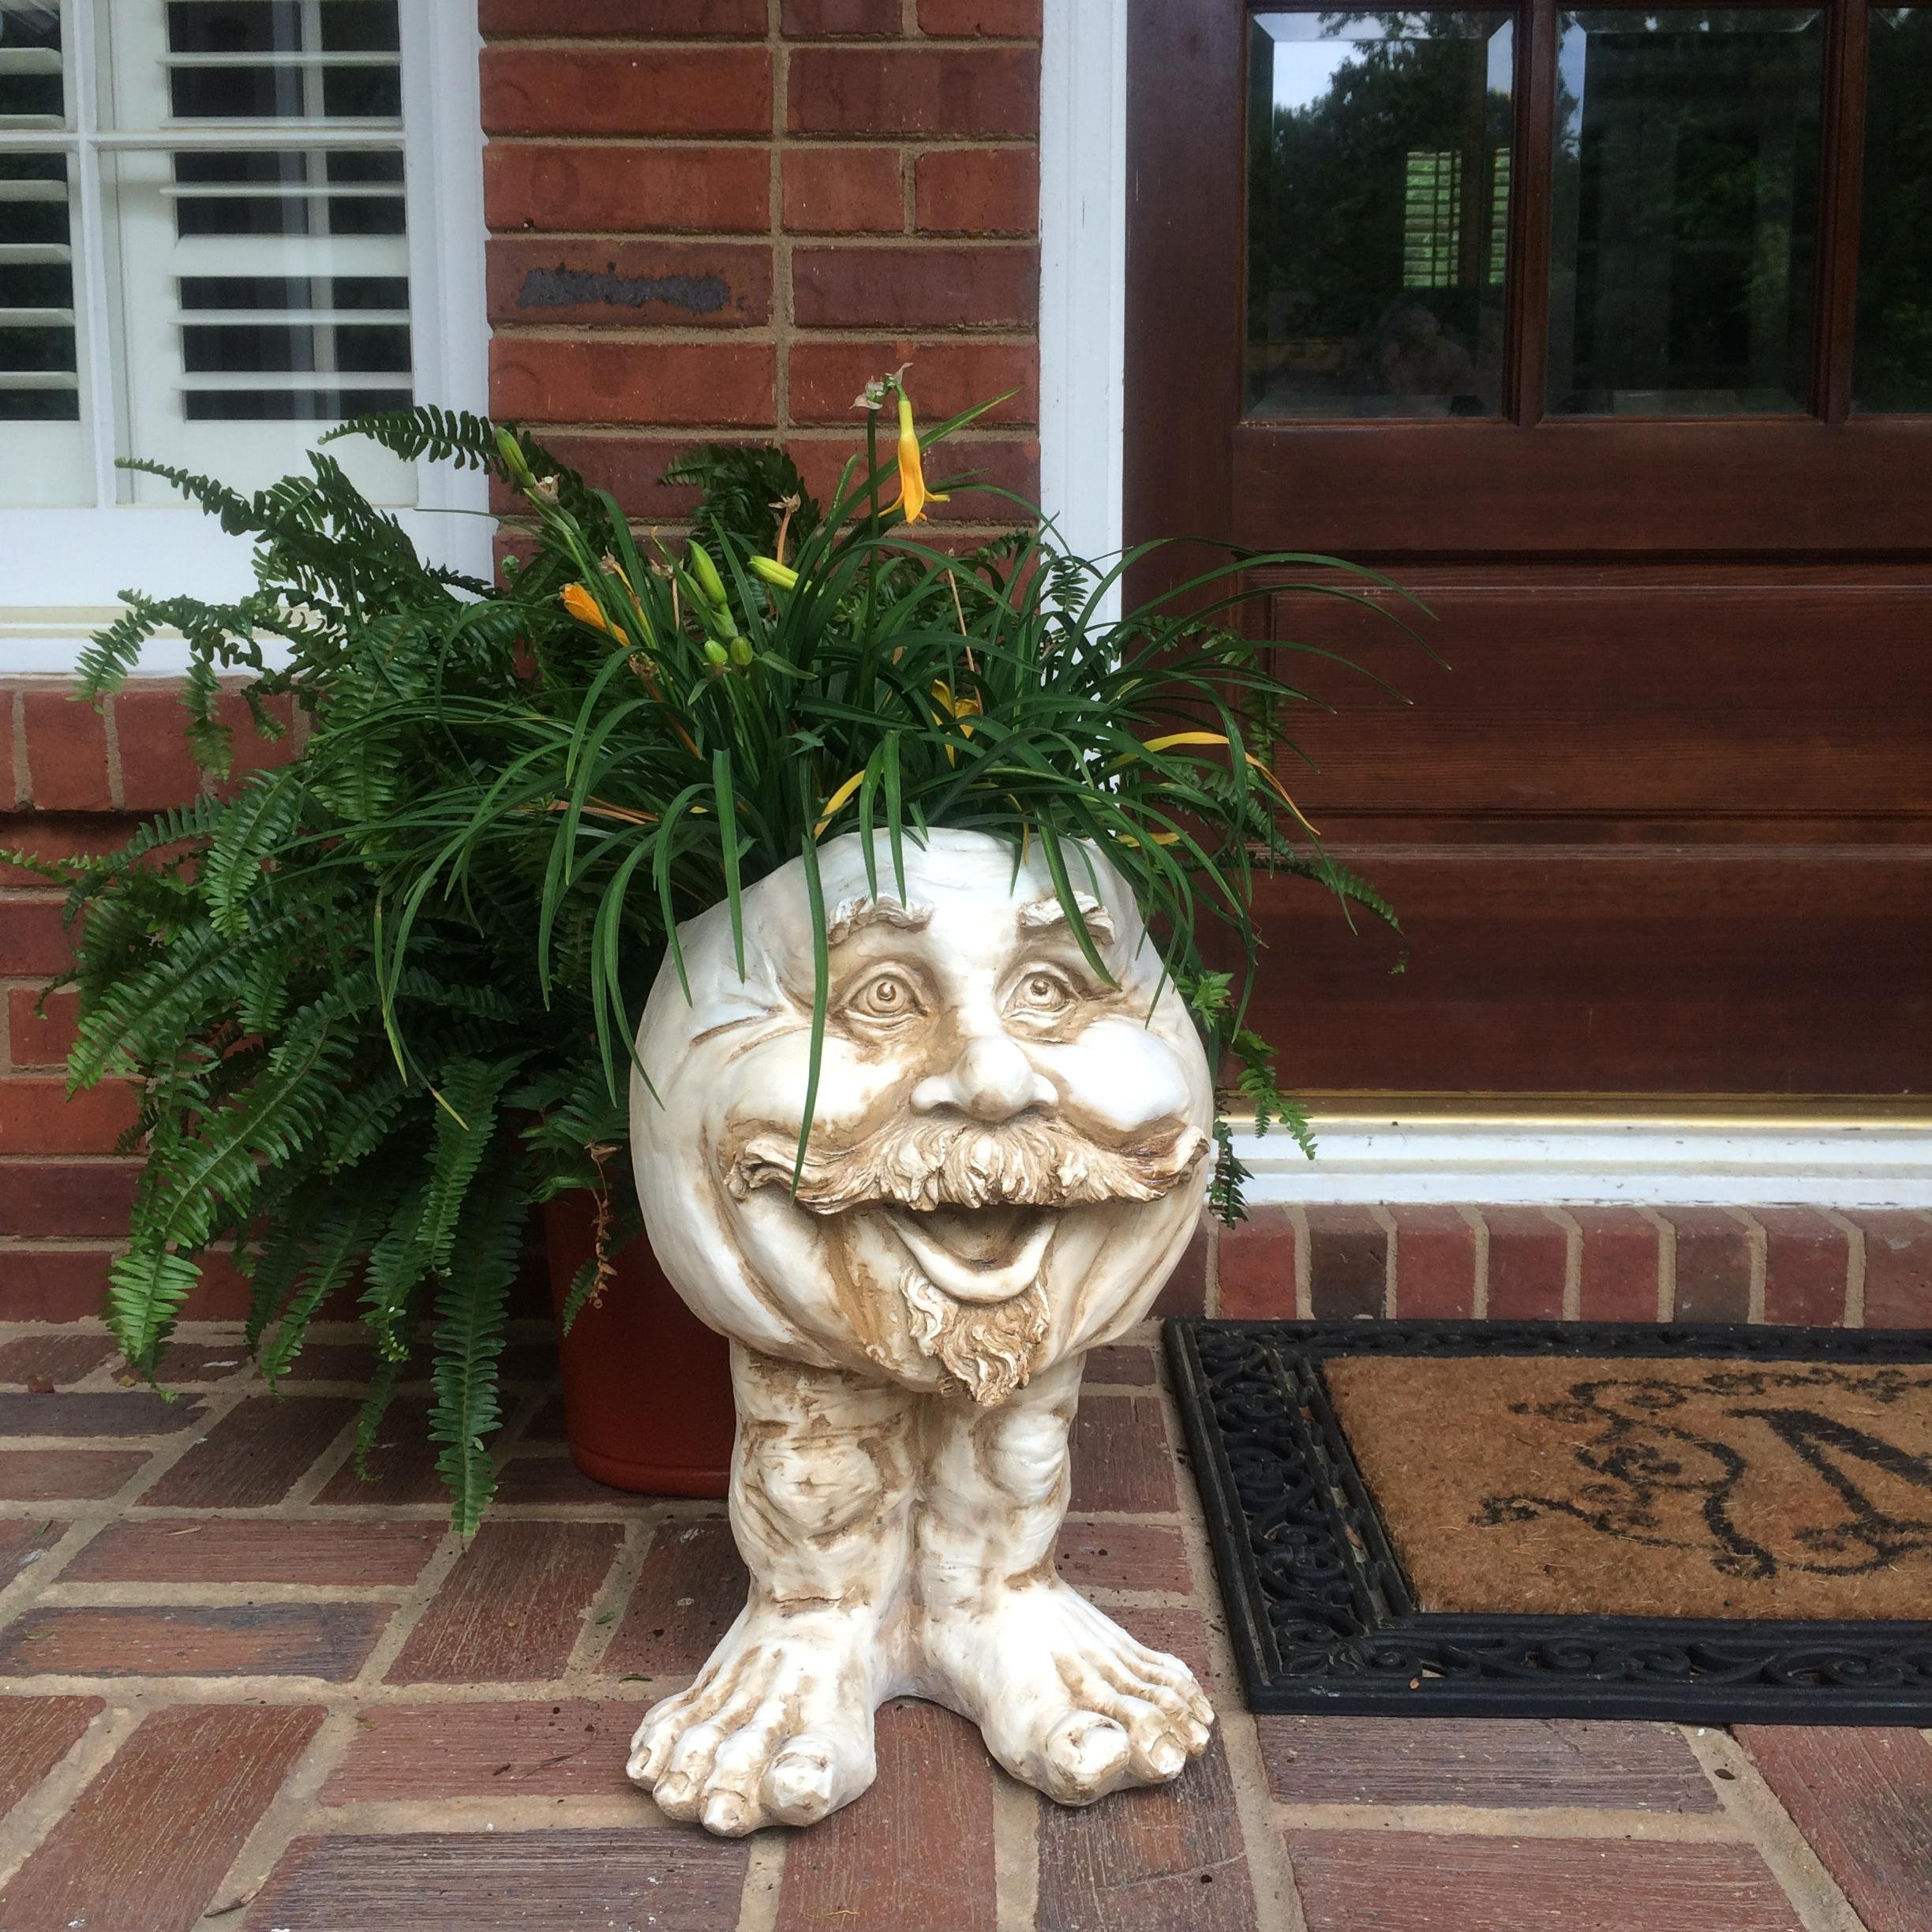 Muggly's Homestyles 37105 Uncle Nate Planter 18'' Antique White Garden Statue